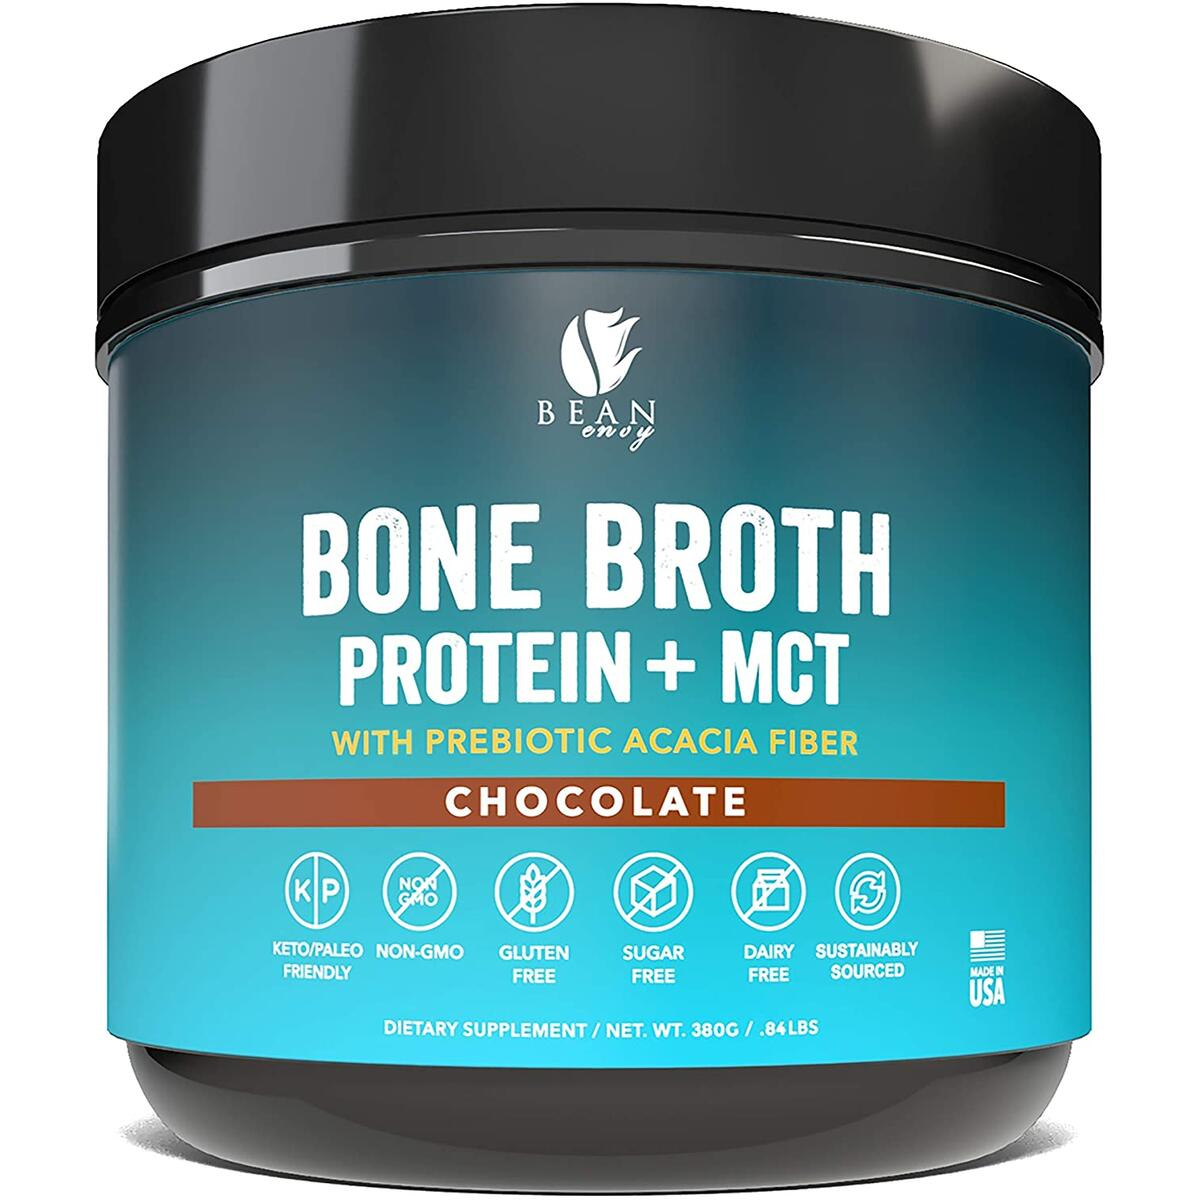 Bean Envy Bone Broth Protein Powder + MCT Oil + Prebiotic Acacia Fiber for Joint Protection, Better Digestion, Energy Boost, Weight Loss, and Sleep - Chocolate